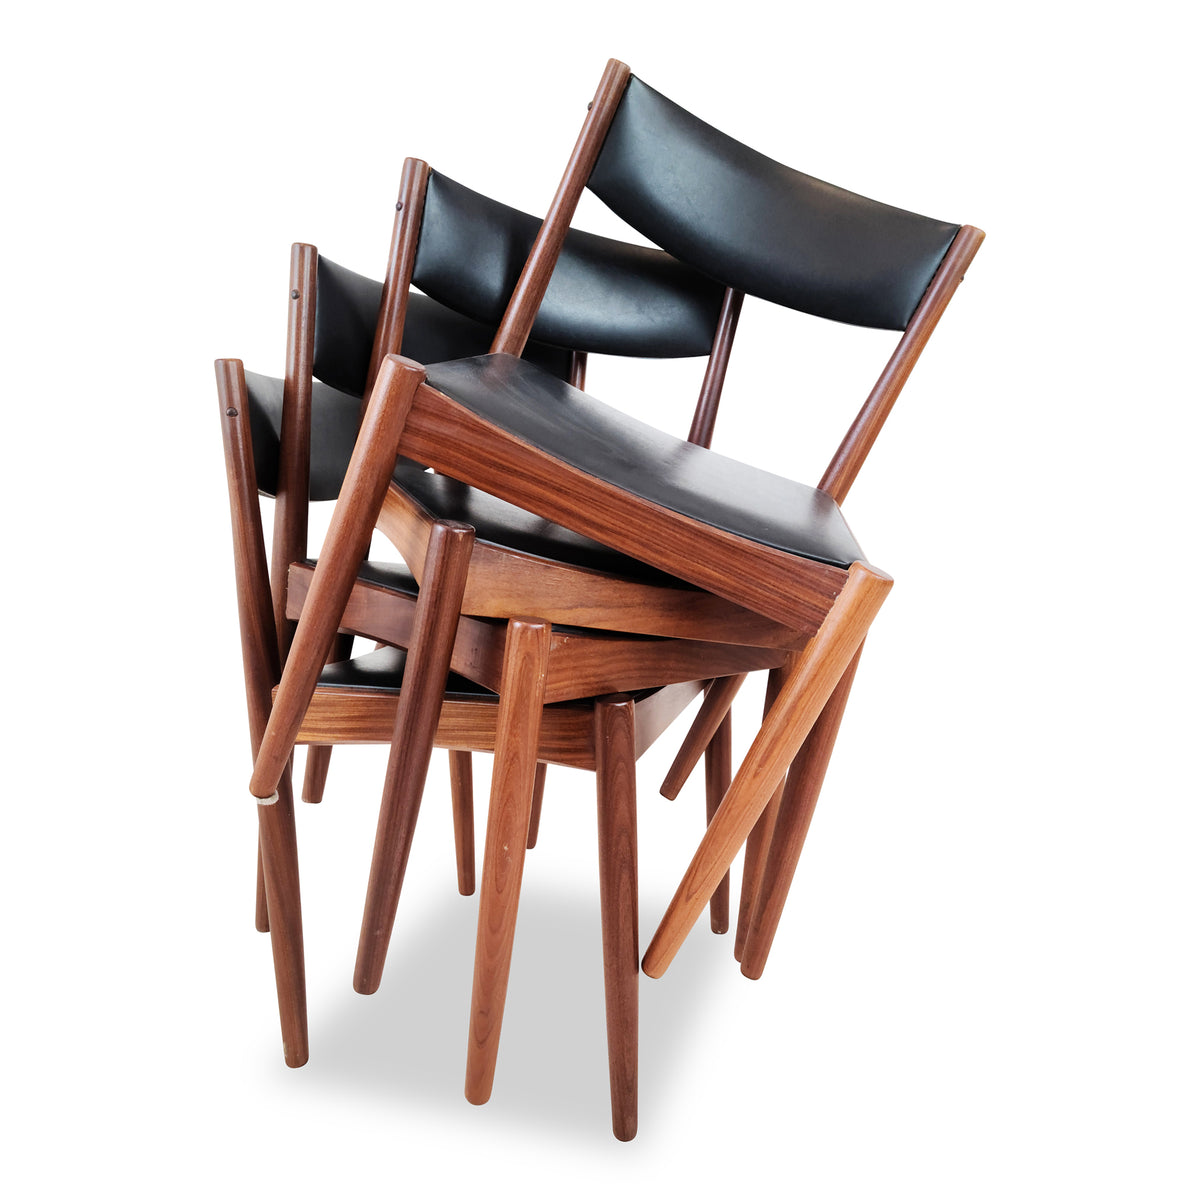 Poul Volther for Frem Rojle Dining Chairs